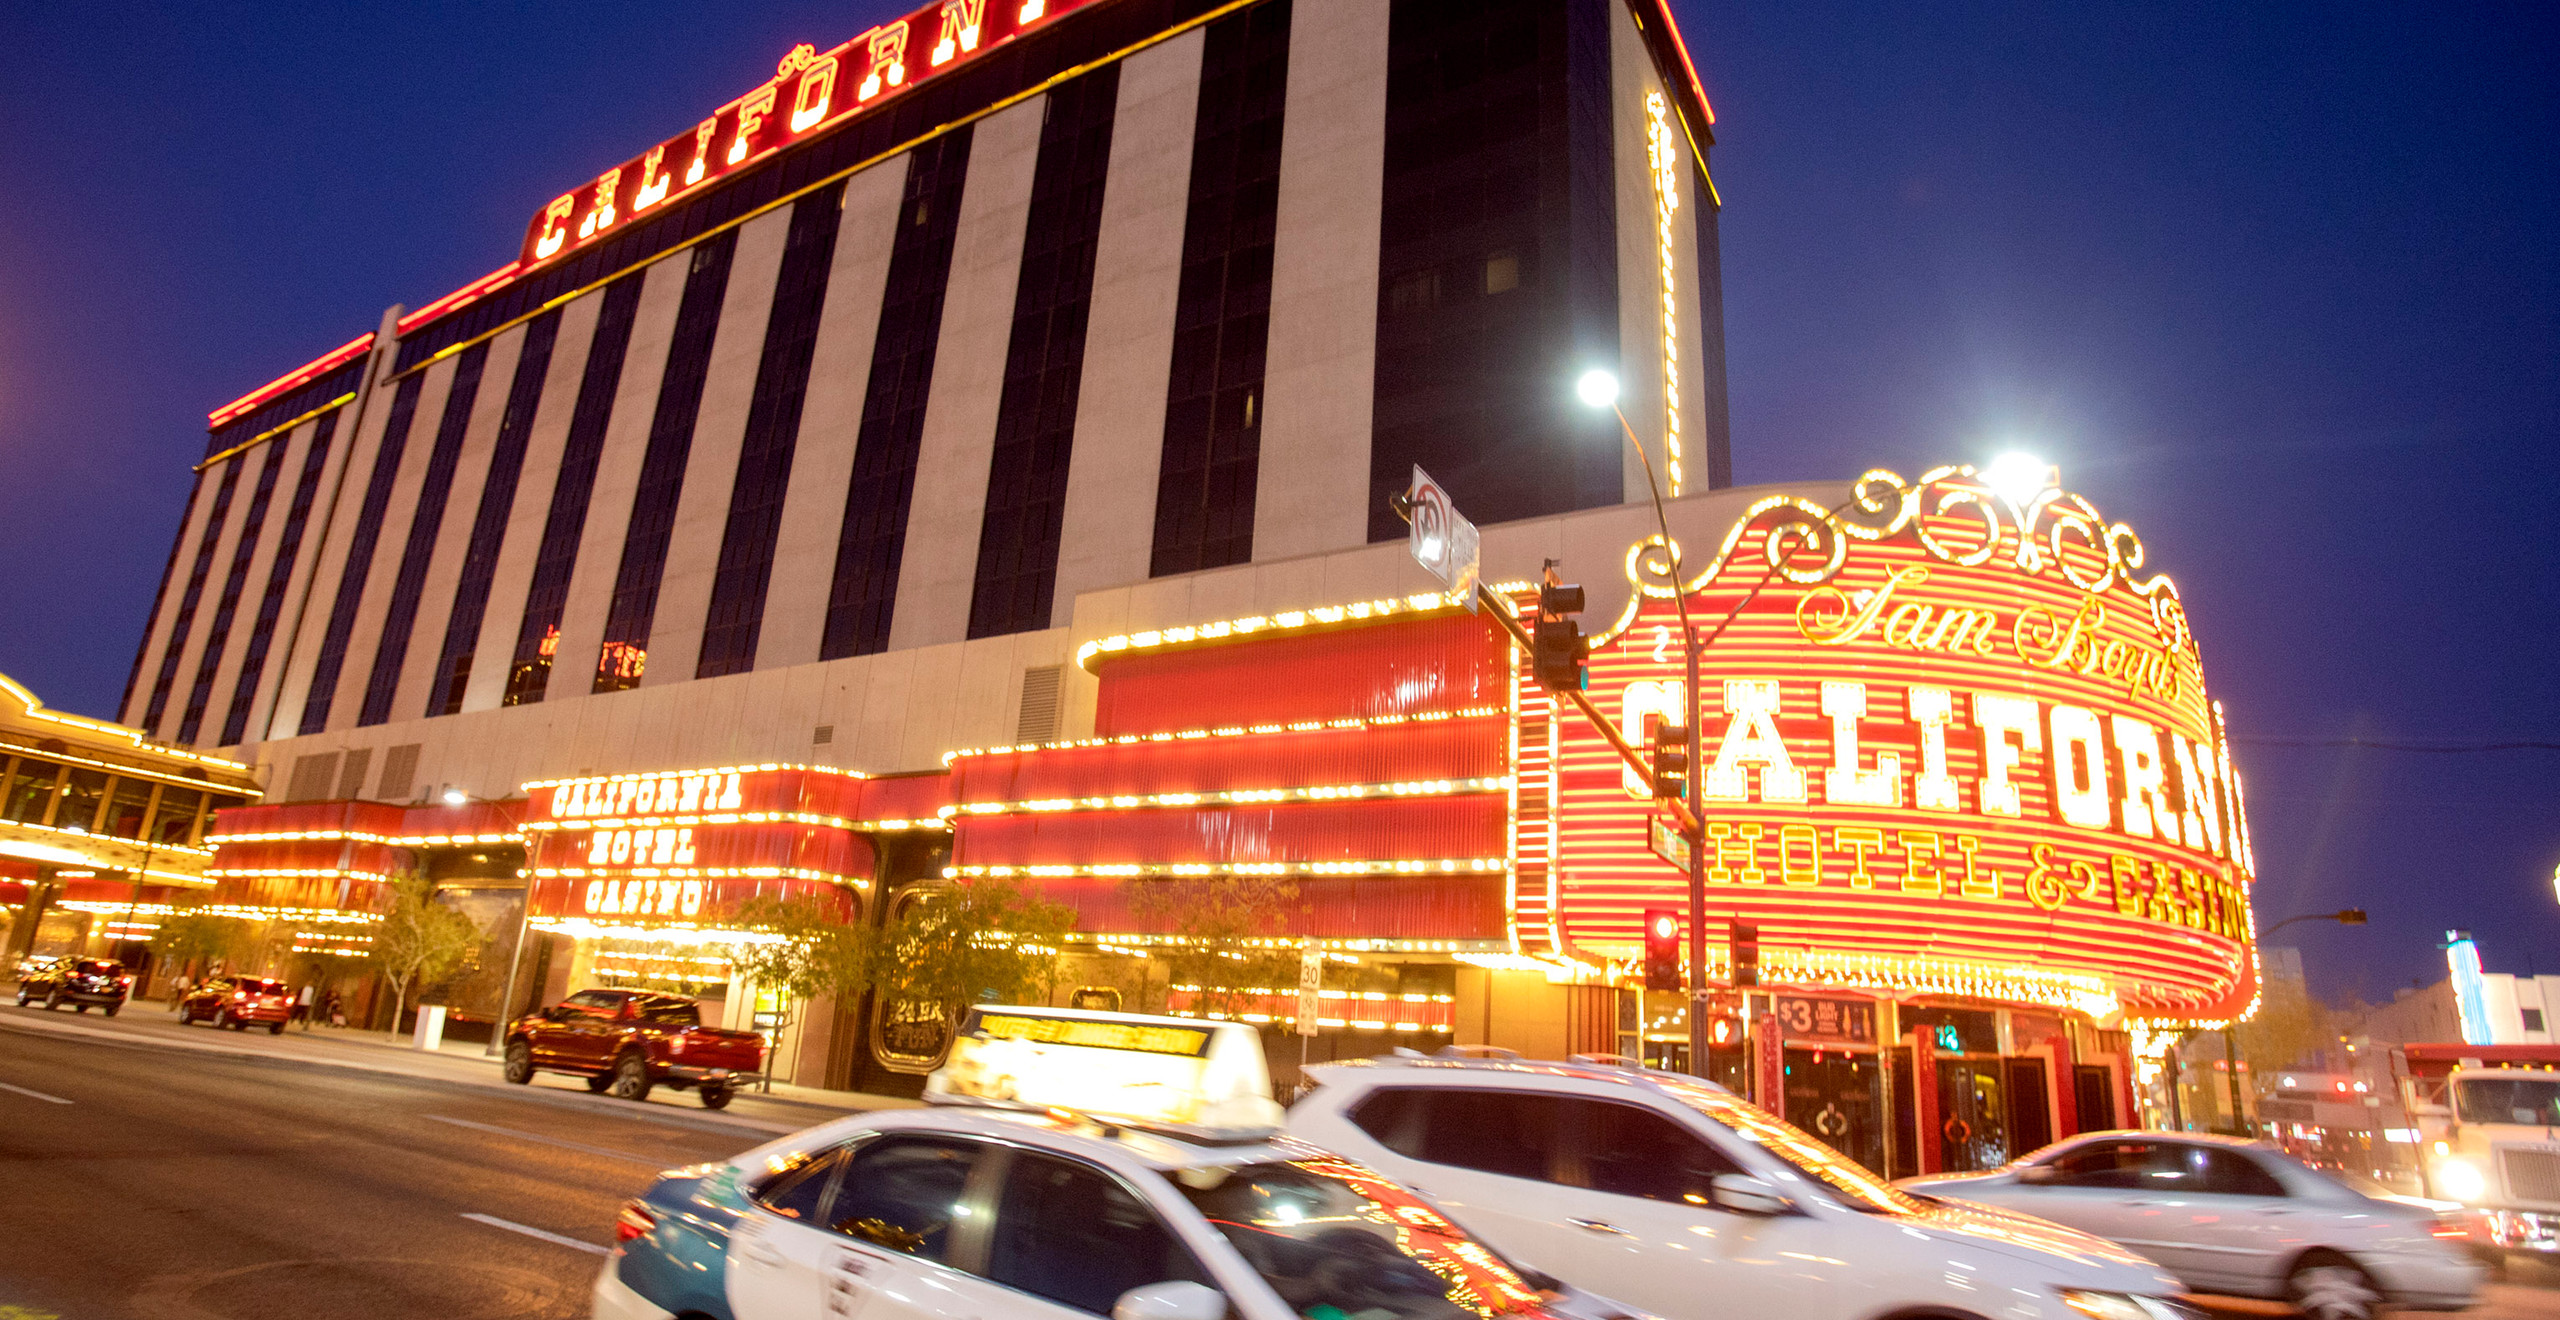 A closer view of the California Hotel and Casino's exterior, with the bright orange and yellow lights contrasting against an indigo sky.